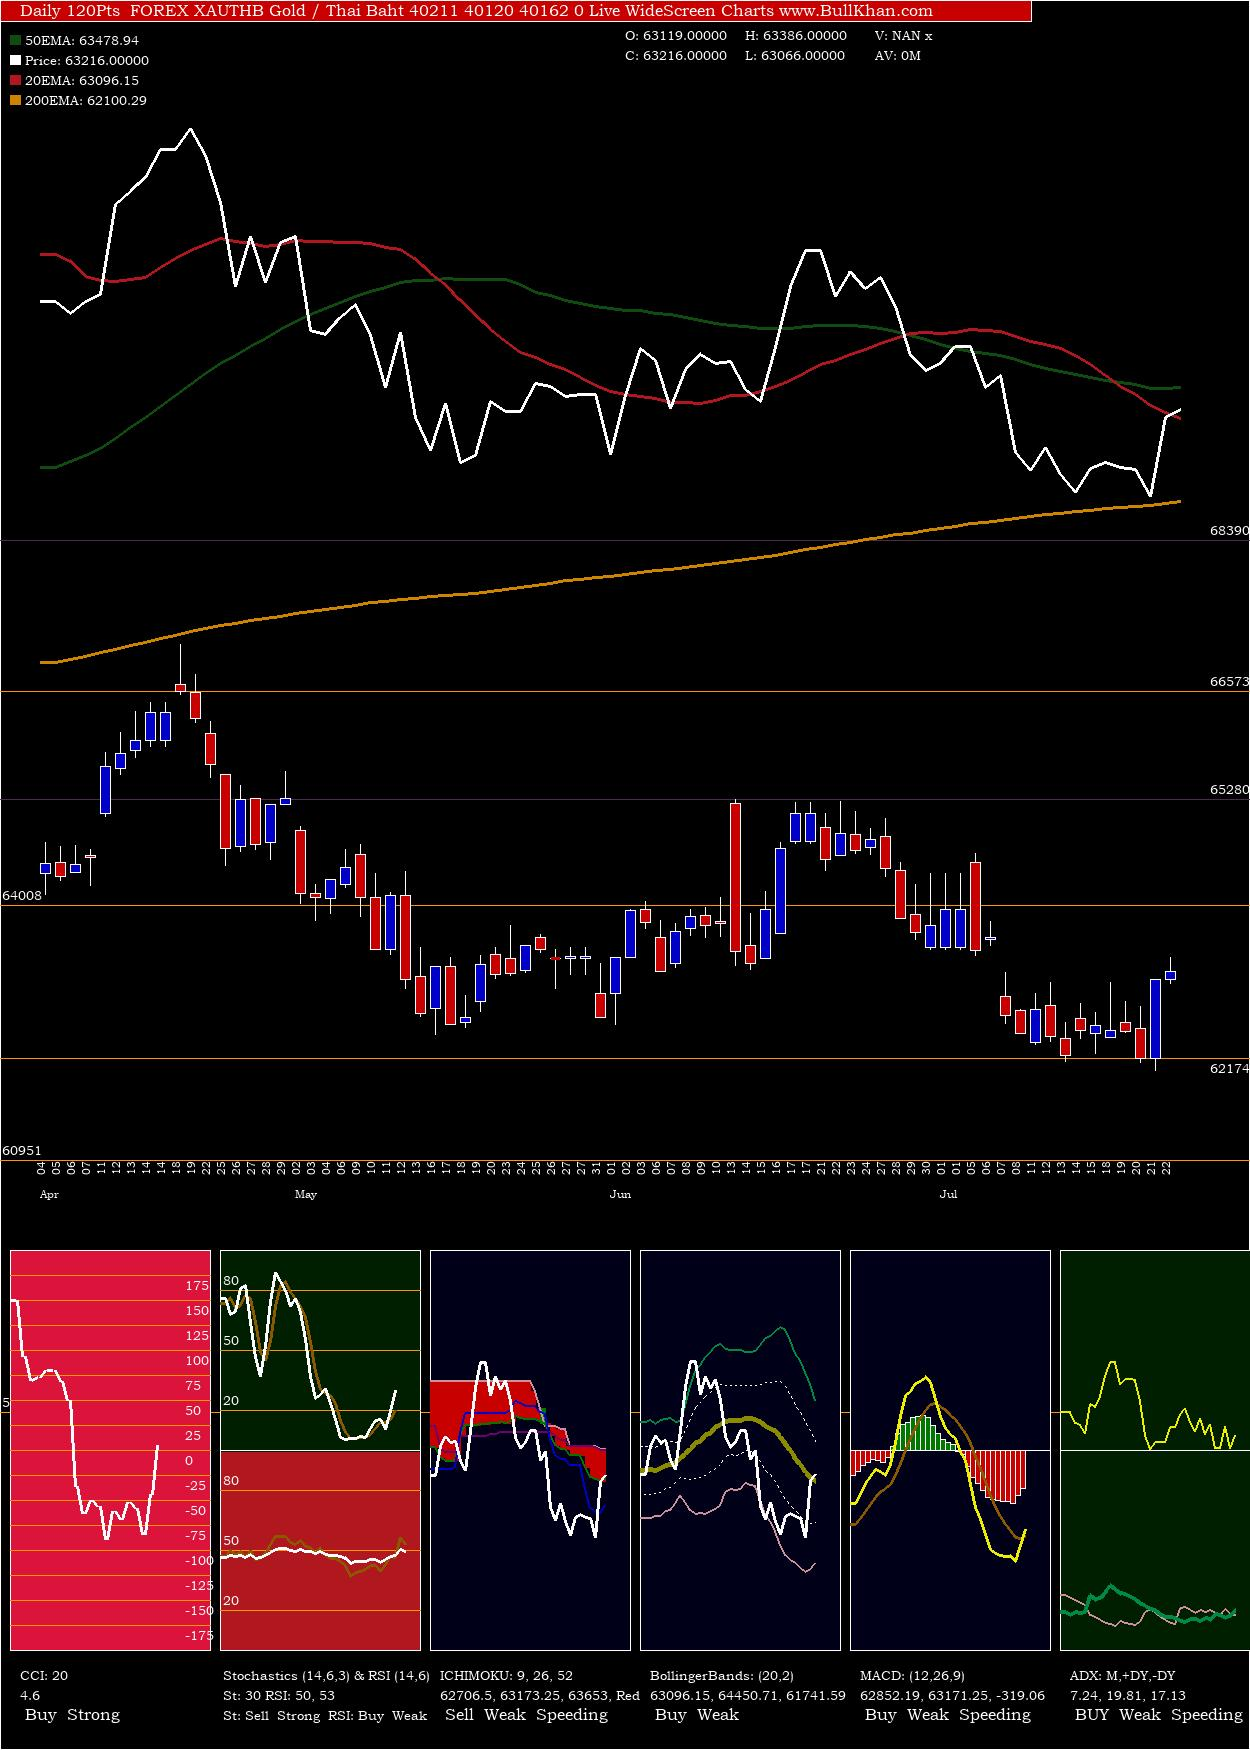 Gold / Thai Baht 40211 40120 40162 0 charts and indicators